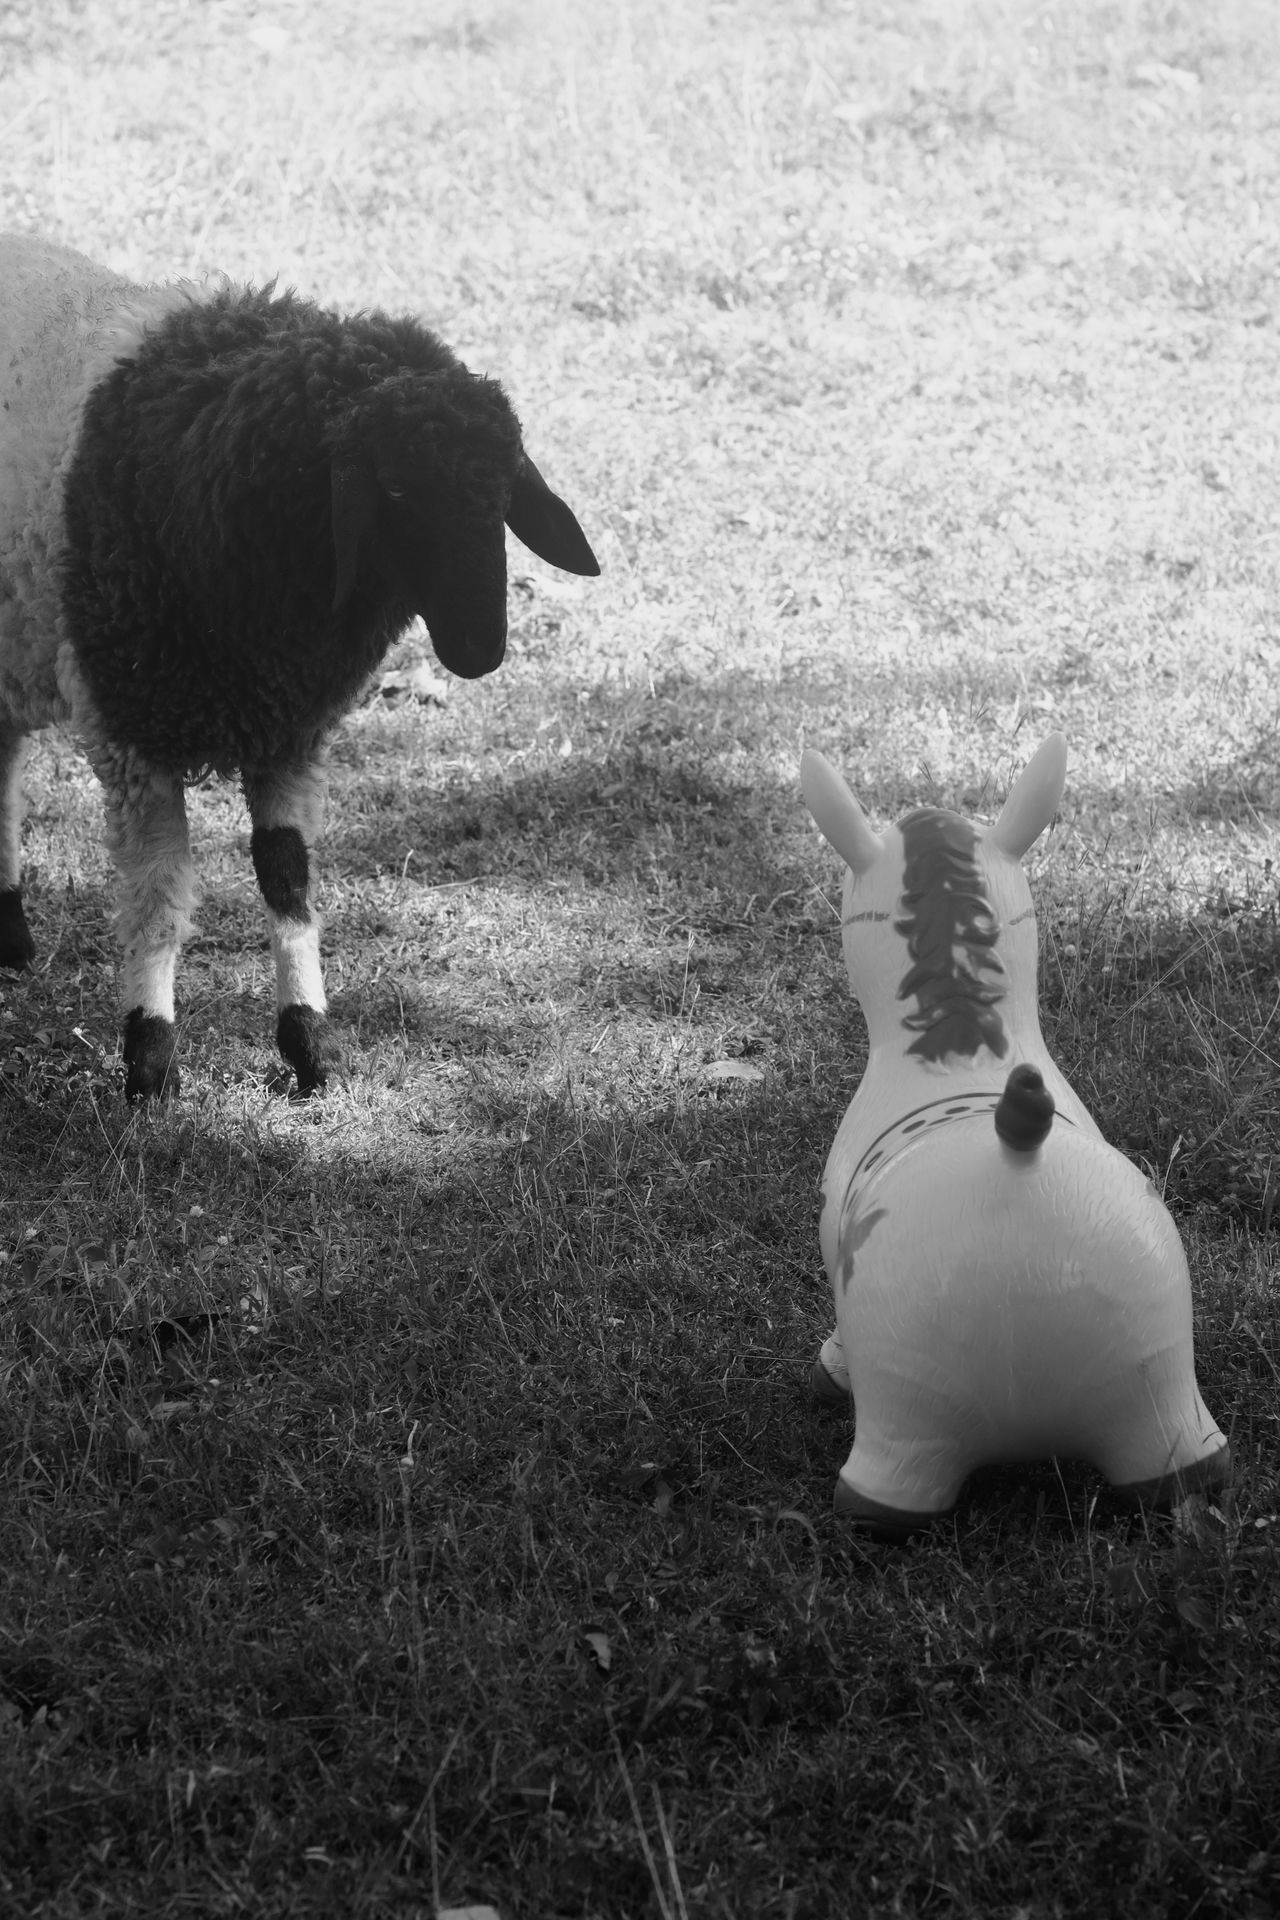 What is true in life. Animal Themes Fake Farm Horses One Animal Satirical Sheep Black & White B&w Nature